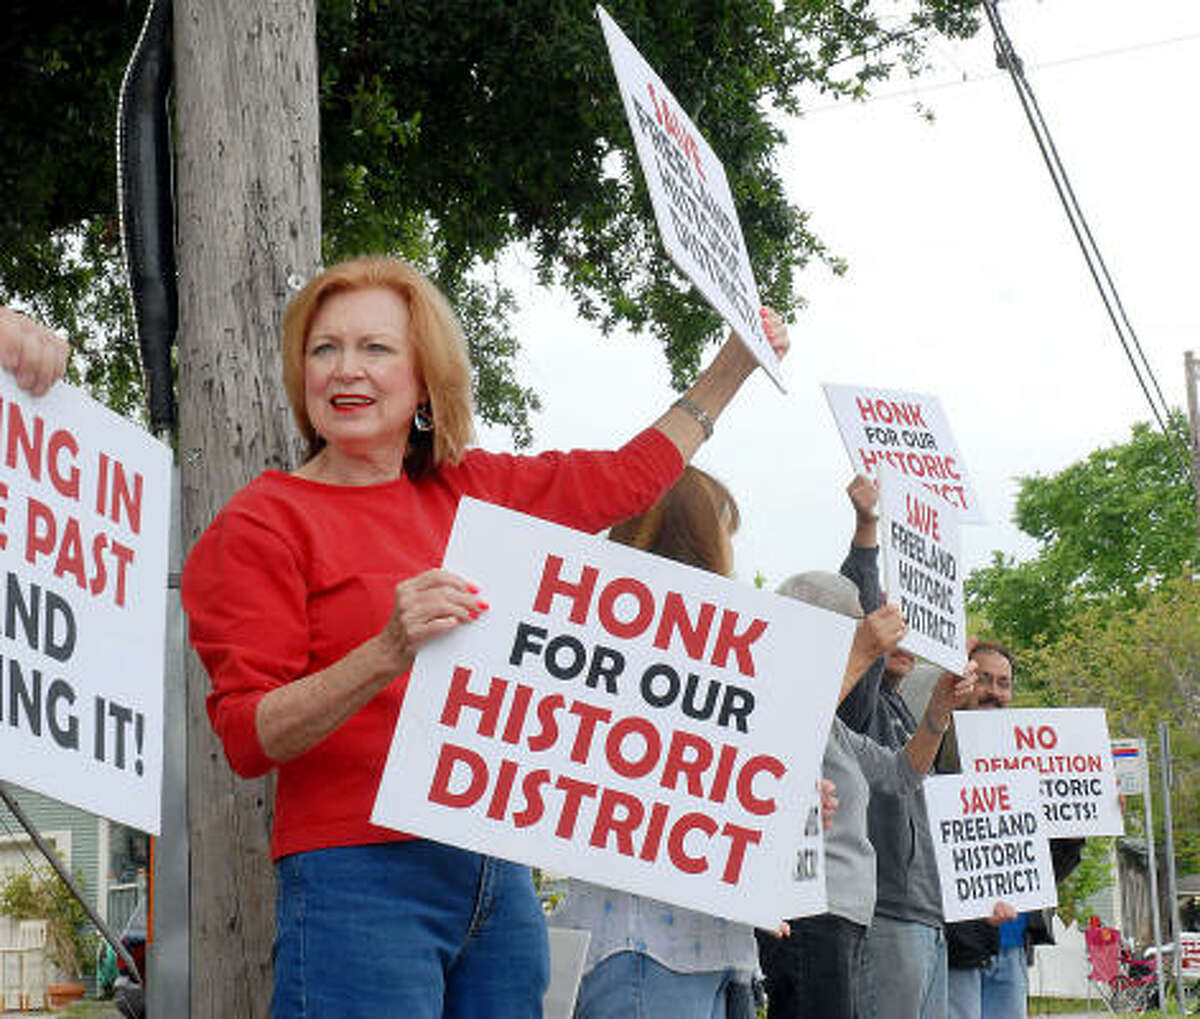 CONTINUING TO PROTEST: Jean Taylor and other residents protest on April 11 plans to raze a 1929 bungalow in the Freeland Historic District.